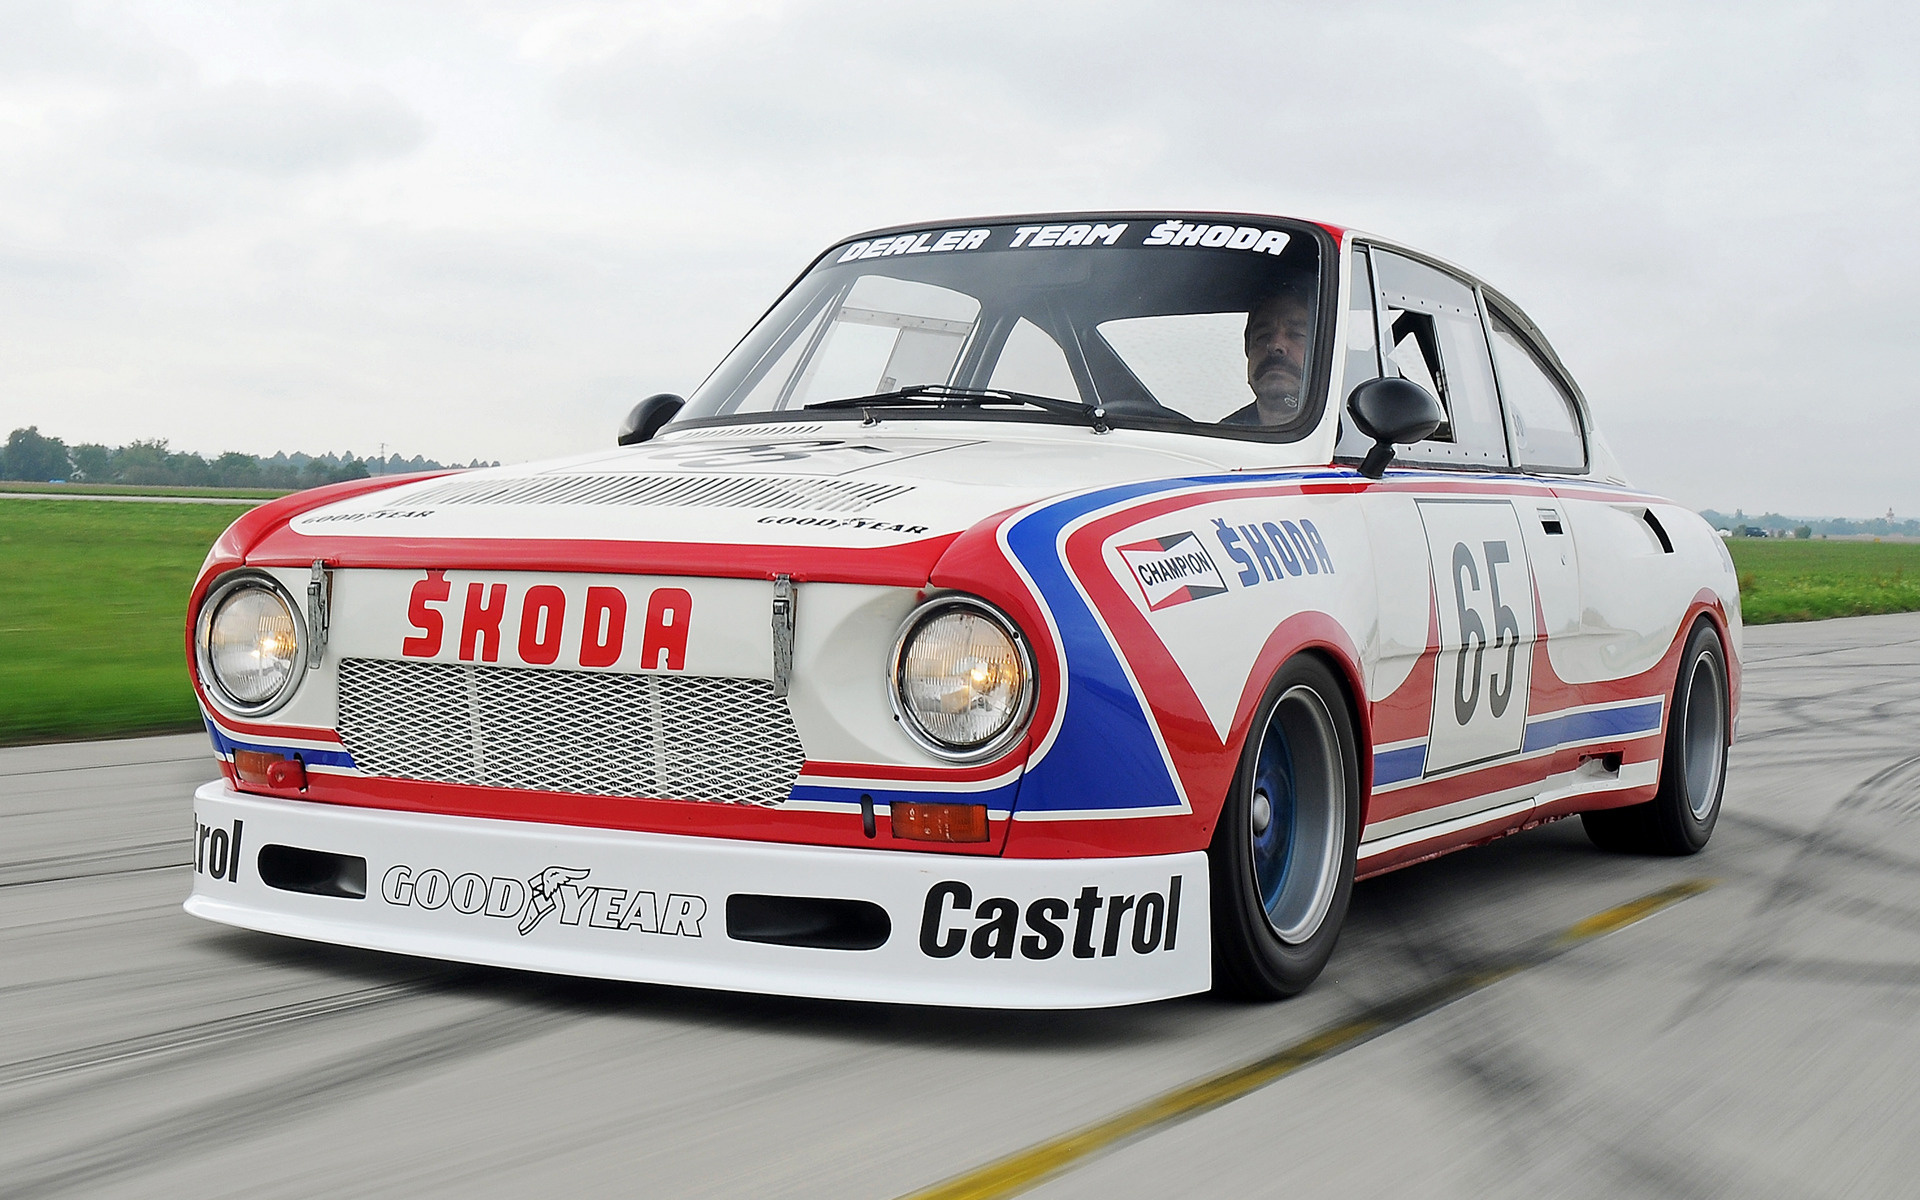 1975 Skoda 130 RS Cup Car - Wallpapers and HD Images | Car ...